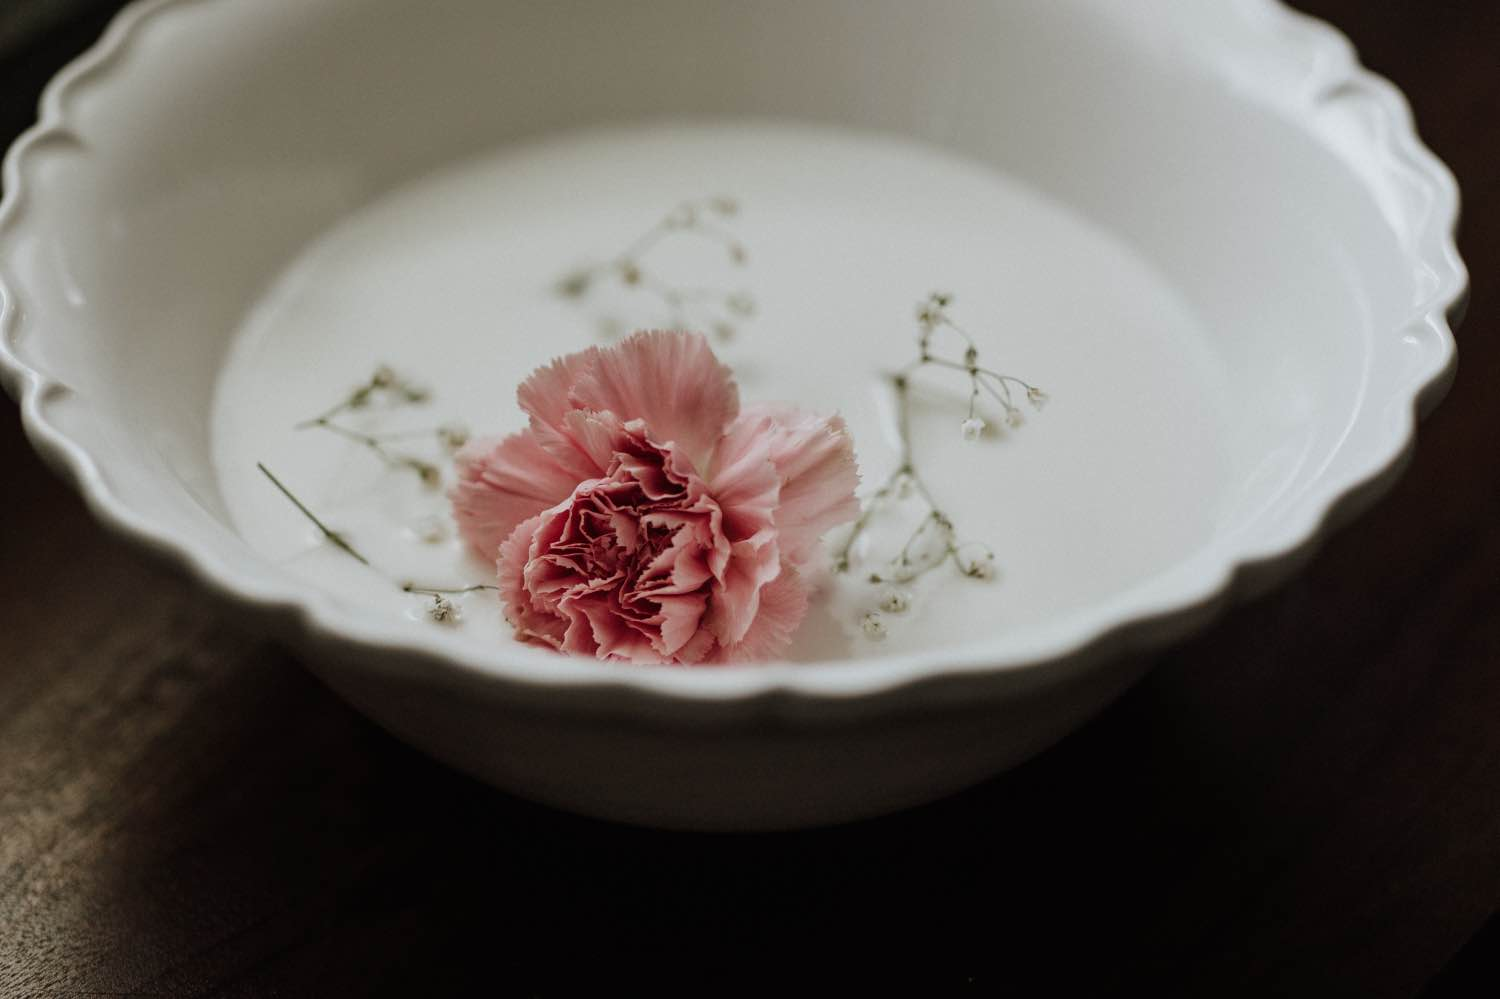 coconut milk and fresh flower bath soak recipe